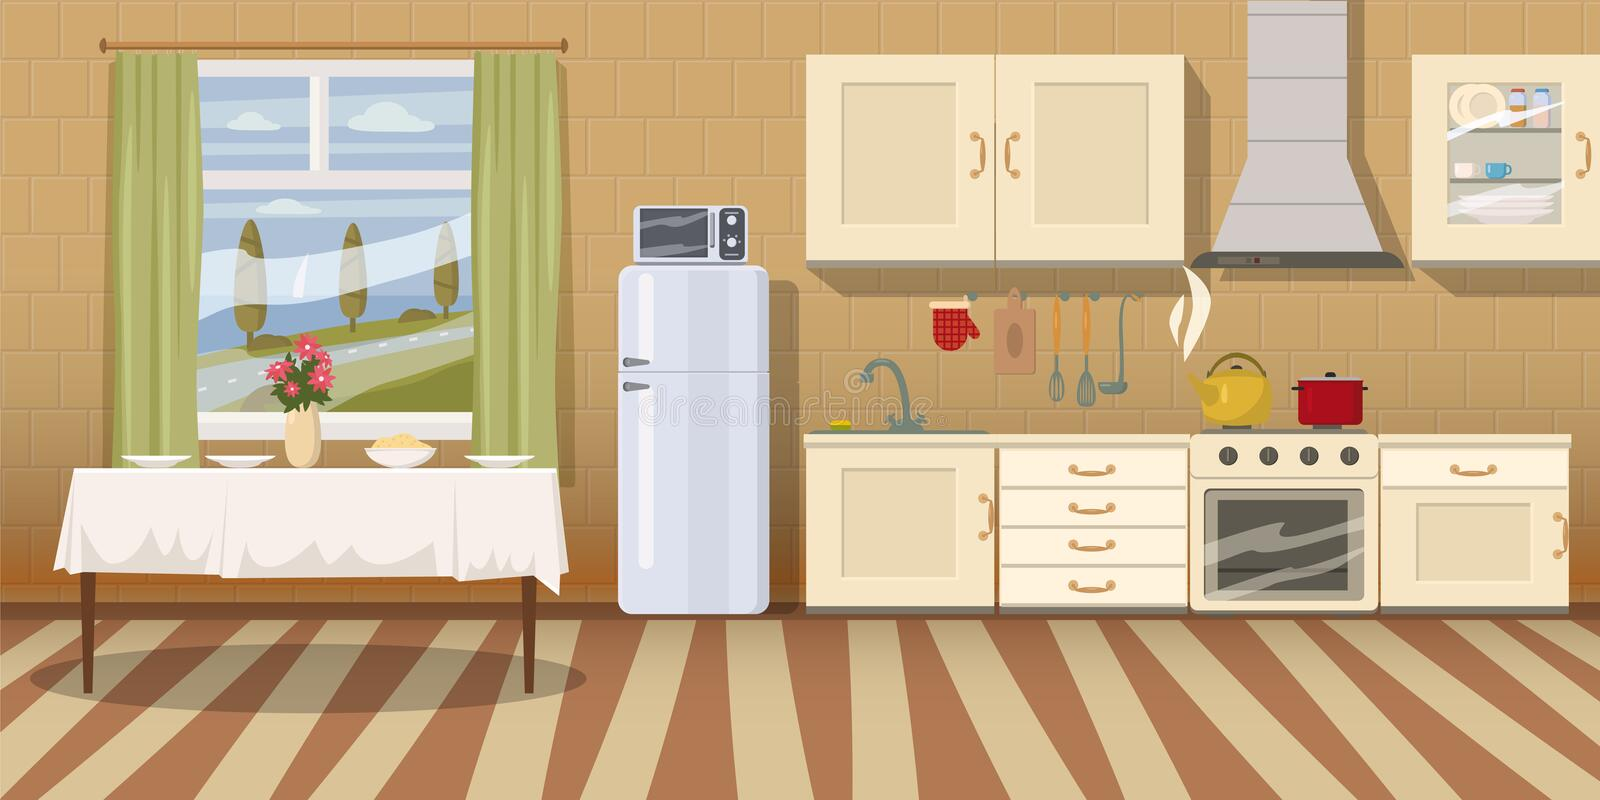 Kitchen with furniture. Cozy kitchen interior with table, stove, cupboard, dishes and fridge. Cartoon style vector. Illustration royalty free illustration